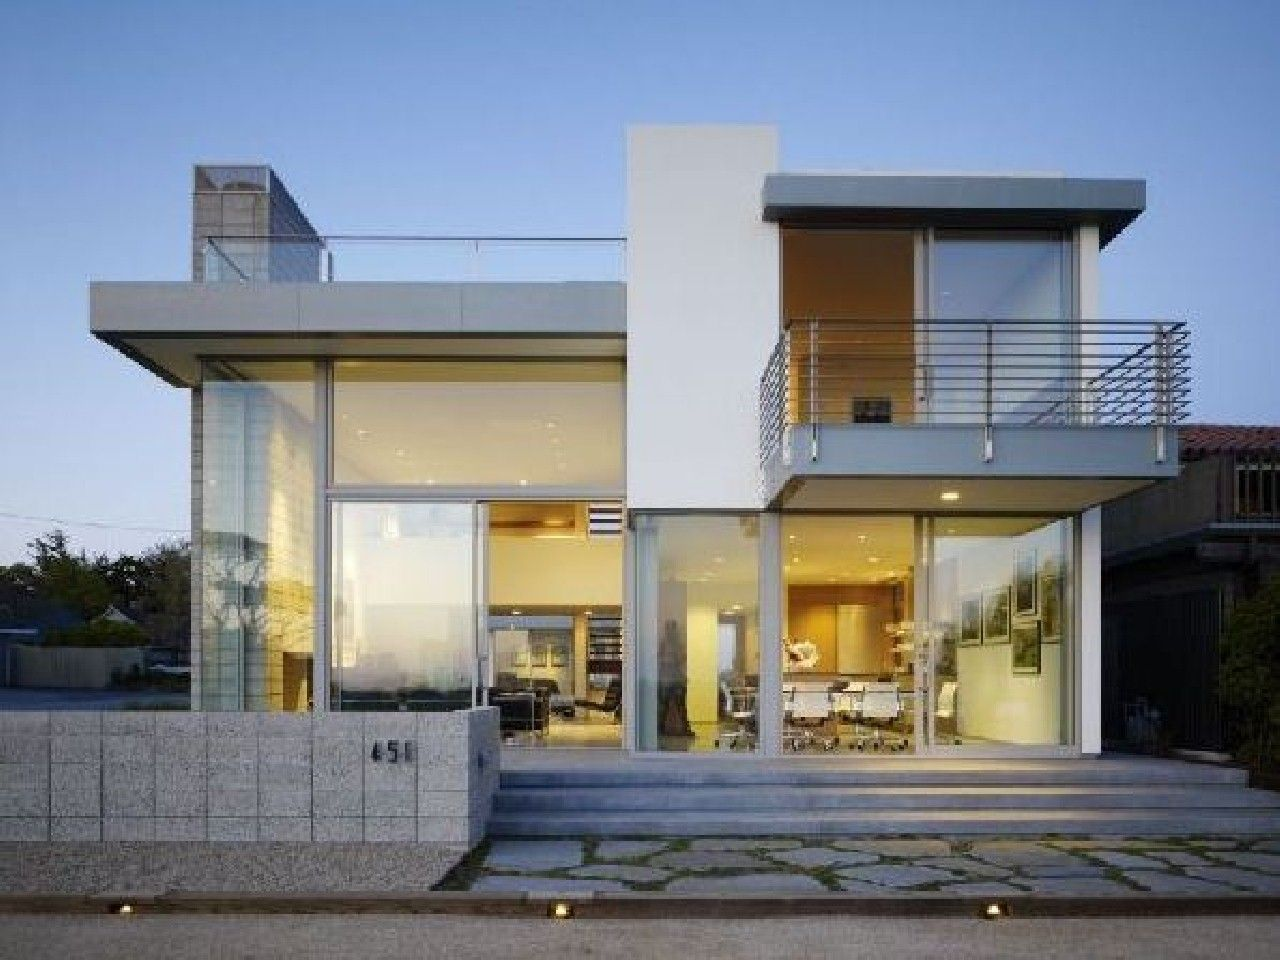 Modern Minimalist Home Design modern minimalist house designs and architectures - home design